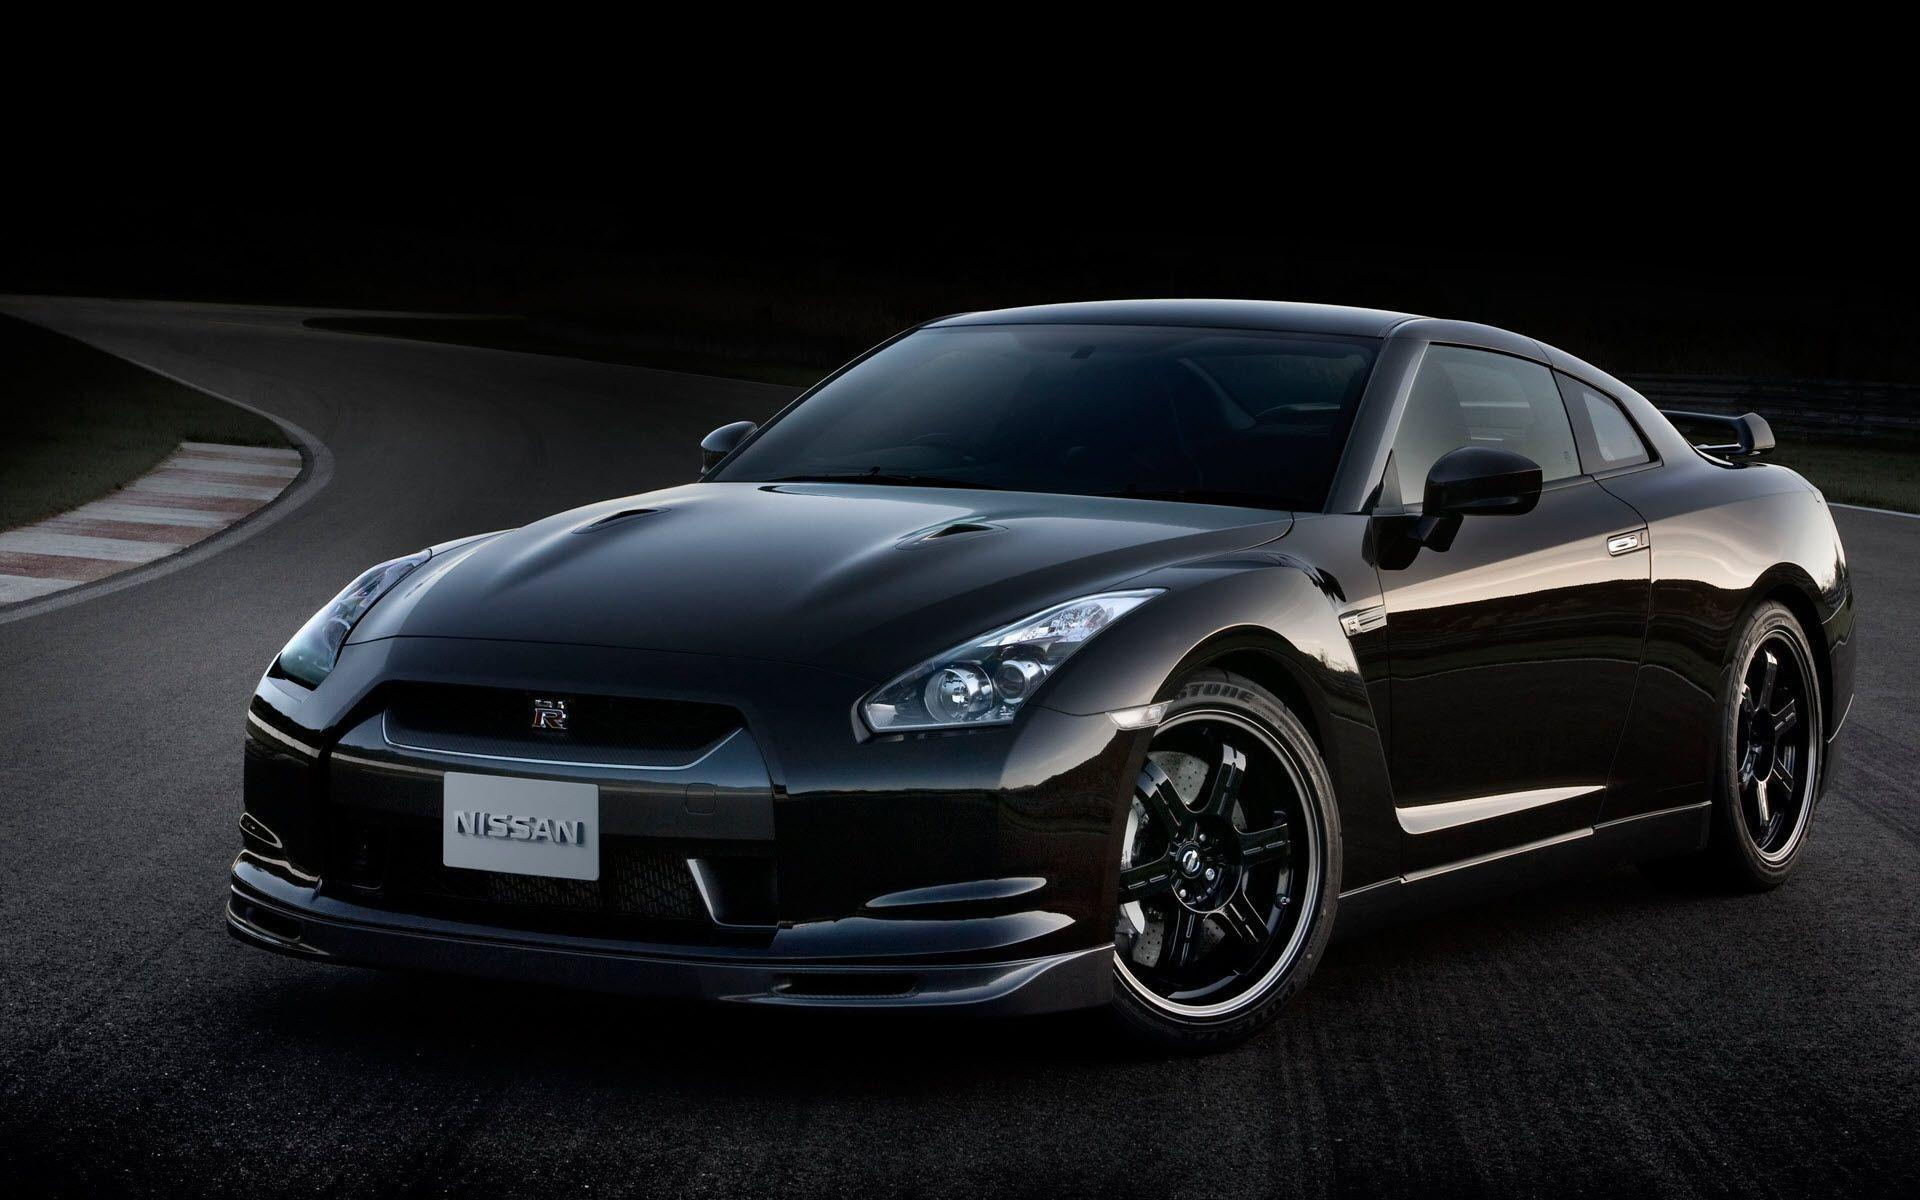 Nissan GTR SpecV Car Wallpapers | HD Wallpapers